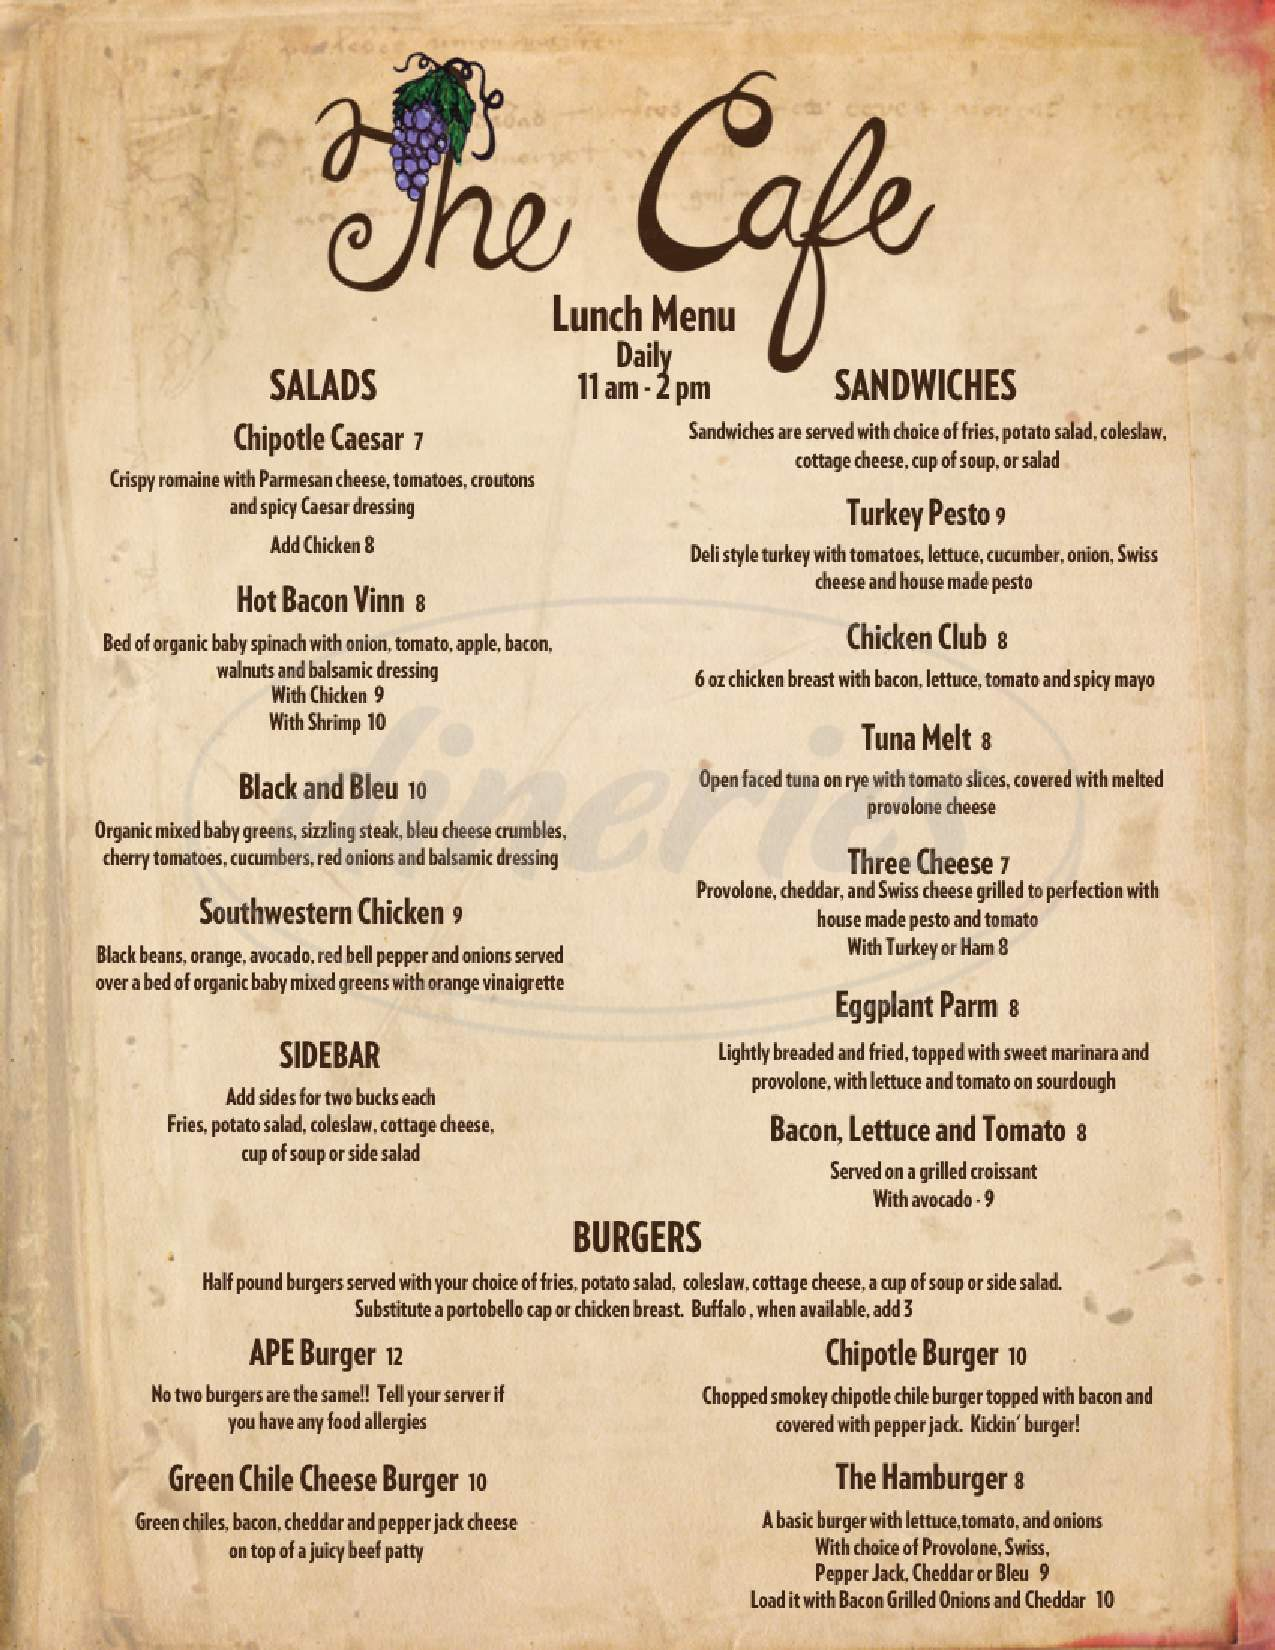 menu for The Cafe